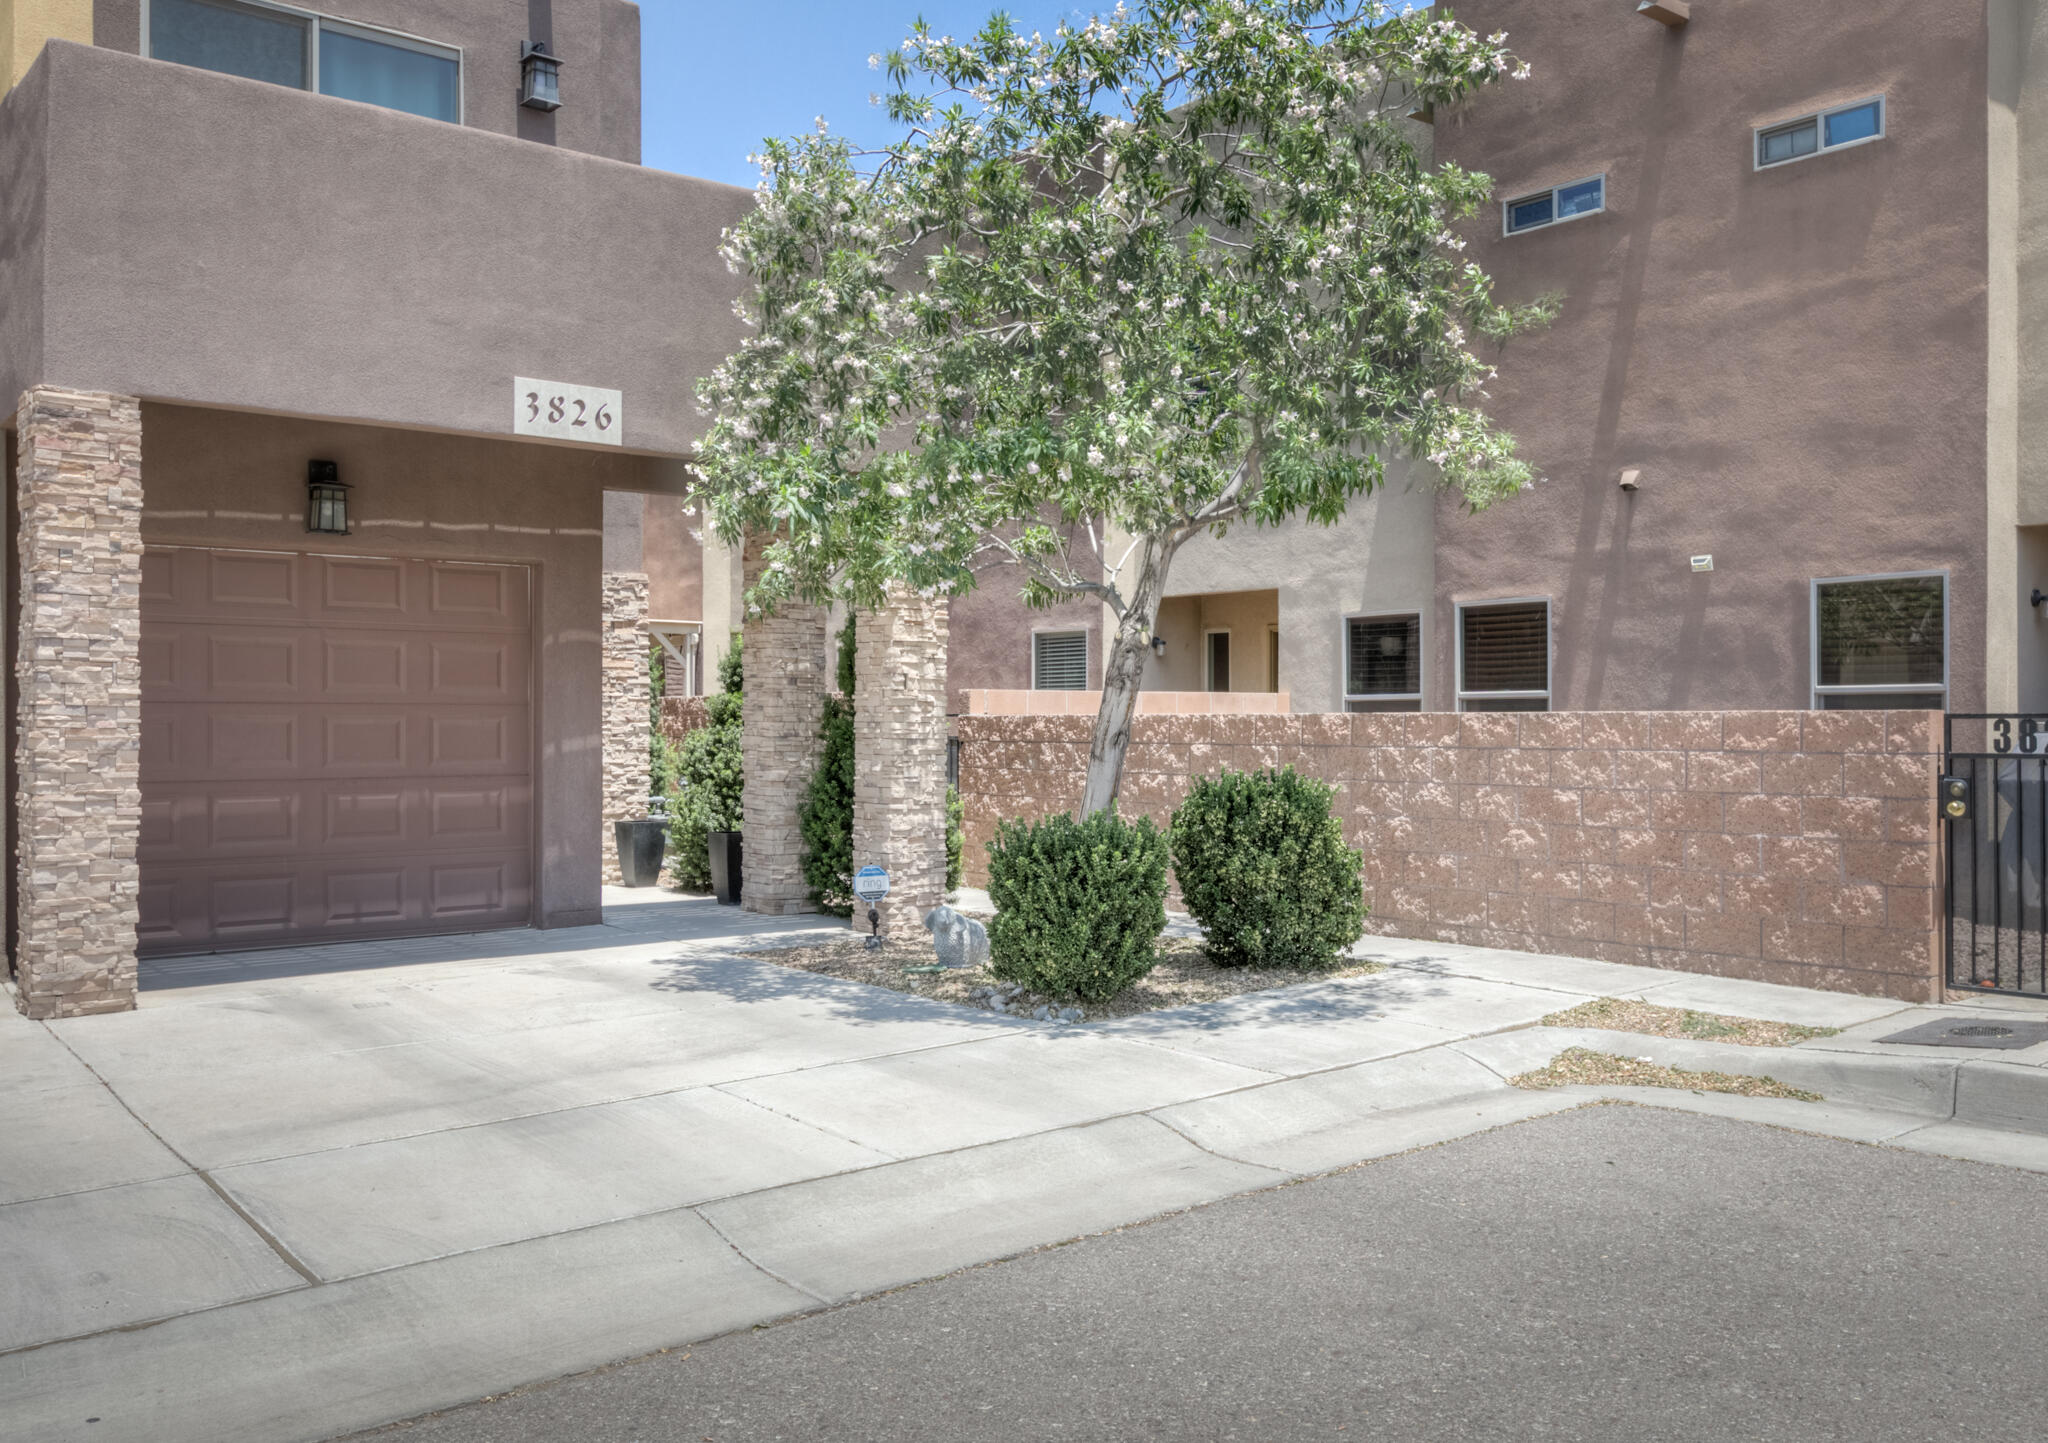 NICE!  Ideal for first time buyer, college students (kiddie condo), professionals and investors.  Centrally located near UNM, hospitals, downtown, malls & major freeways.   Energy Efficient Townhome with Refrigerated Air and Low Maintenance Yard.  Open Floor Plan, laminate and tile floors, Arched Doorways.  Stainless Appliances.  Great space for Gatherings or Peaceful Solitude. Spacious Master with His/Her Closets & Mountain View.  Bedrooms and Laundry Upstairs for Convenience. Air Gap & Sound Deadening Board between dwellings, Blown-in Insulation & Low E Glass Lower Utility Bills.